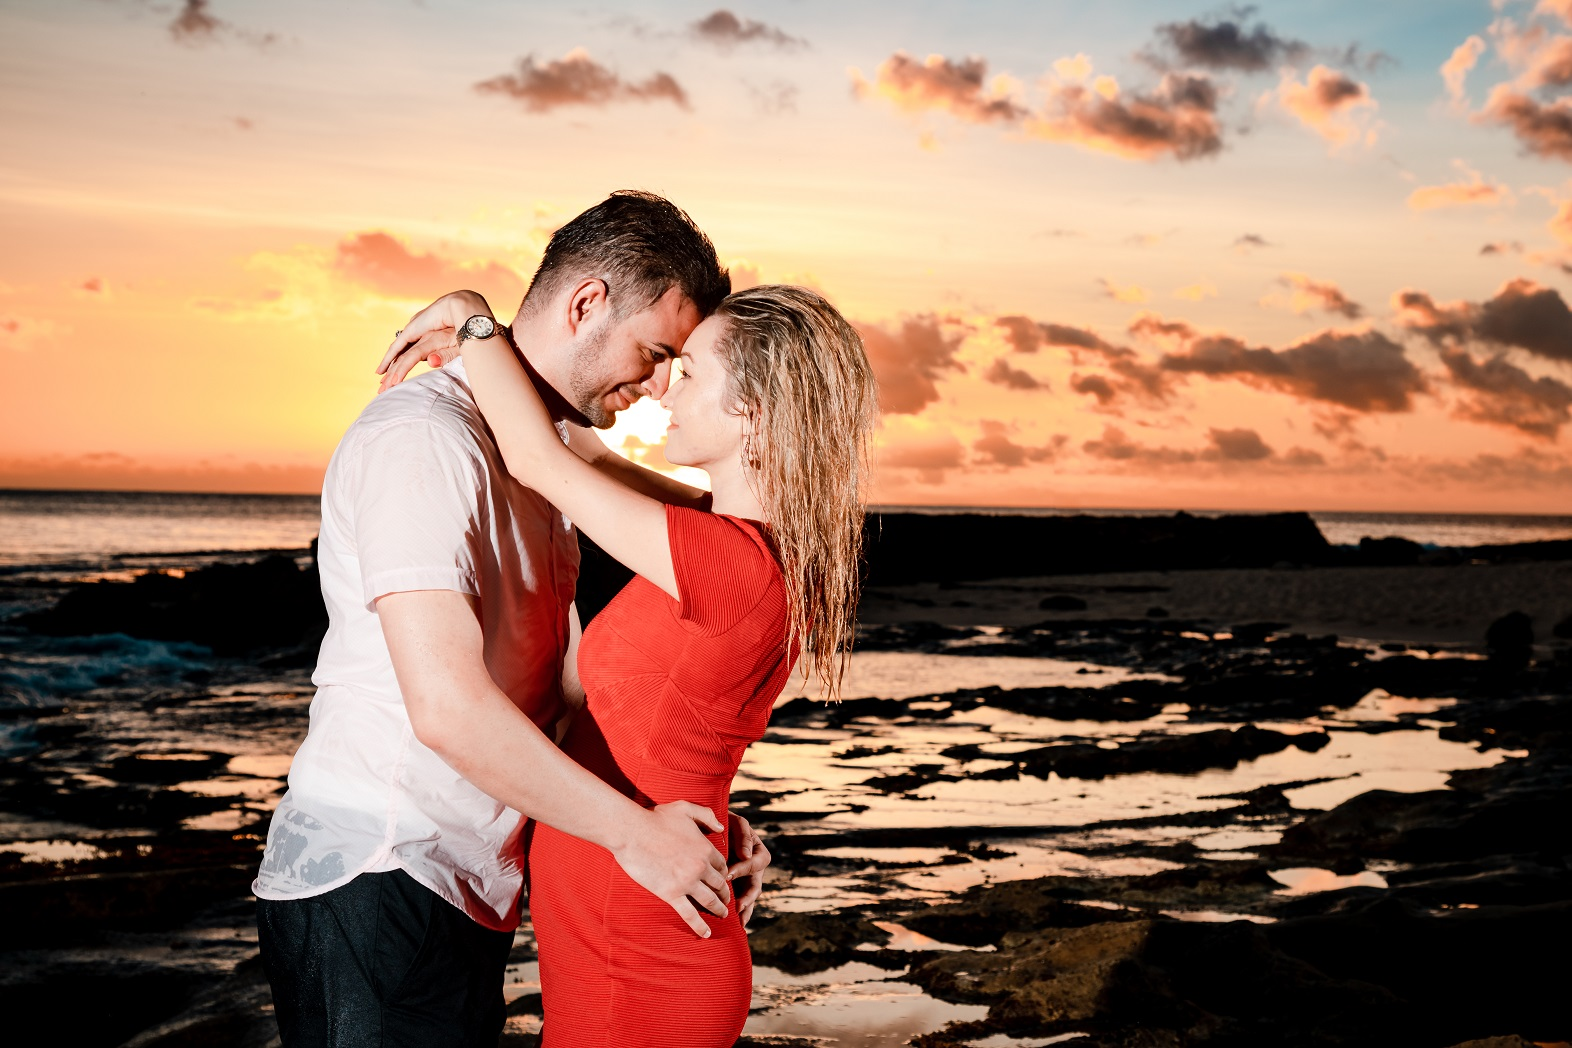 A romantic and intimate pose...